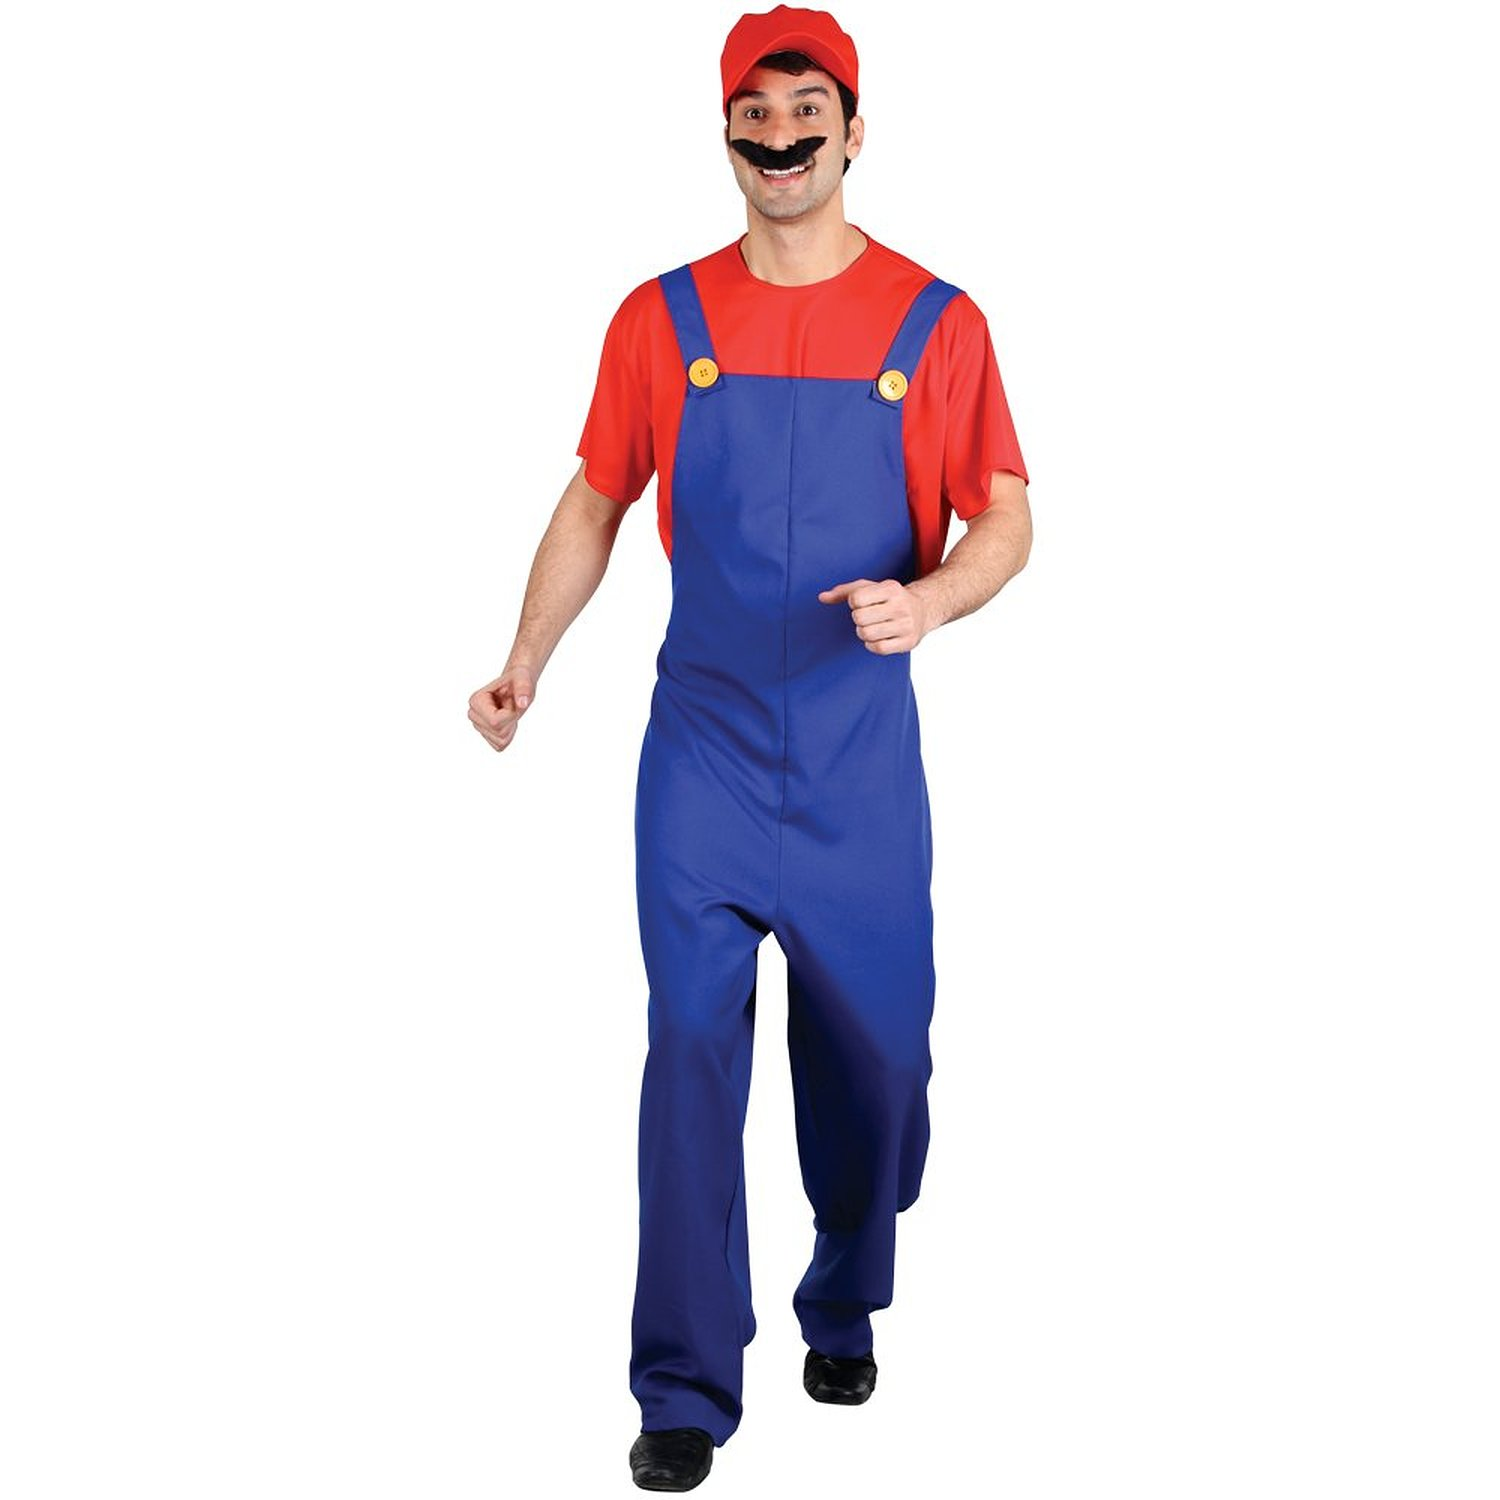 Adult Red funny plumber costume em3134